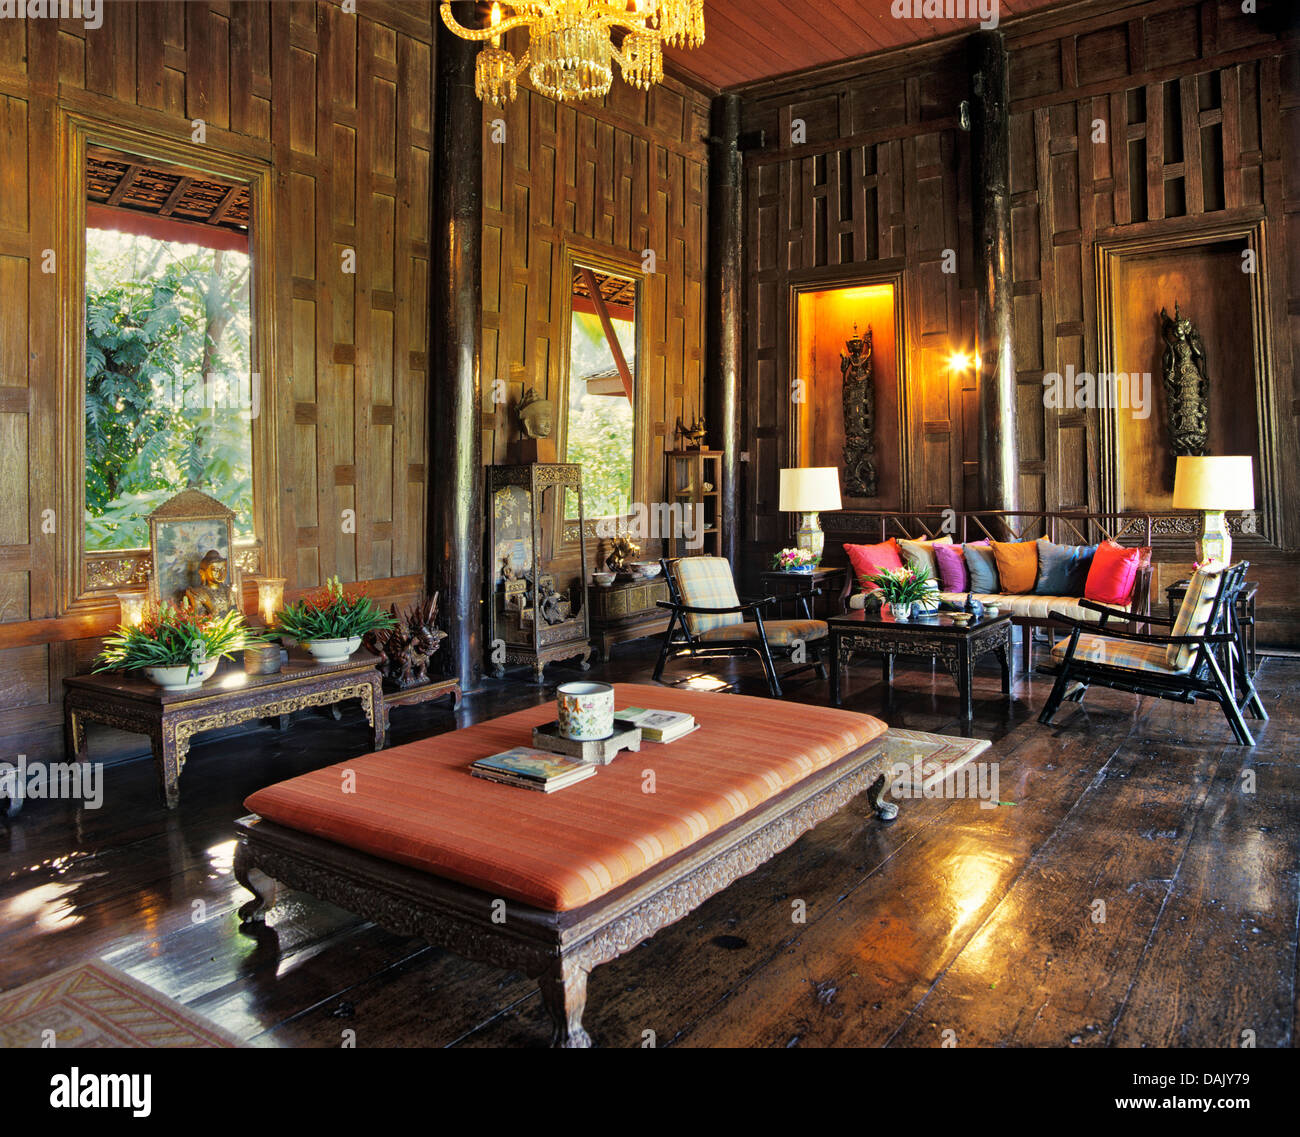 Villa living room in the jim thompson house stock photo for The thompson house